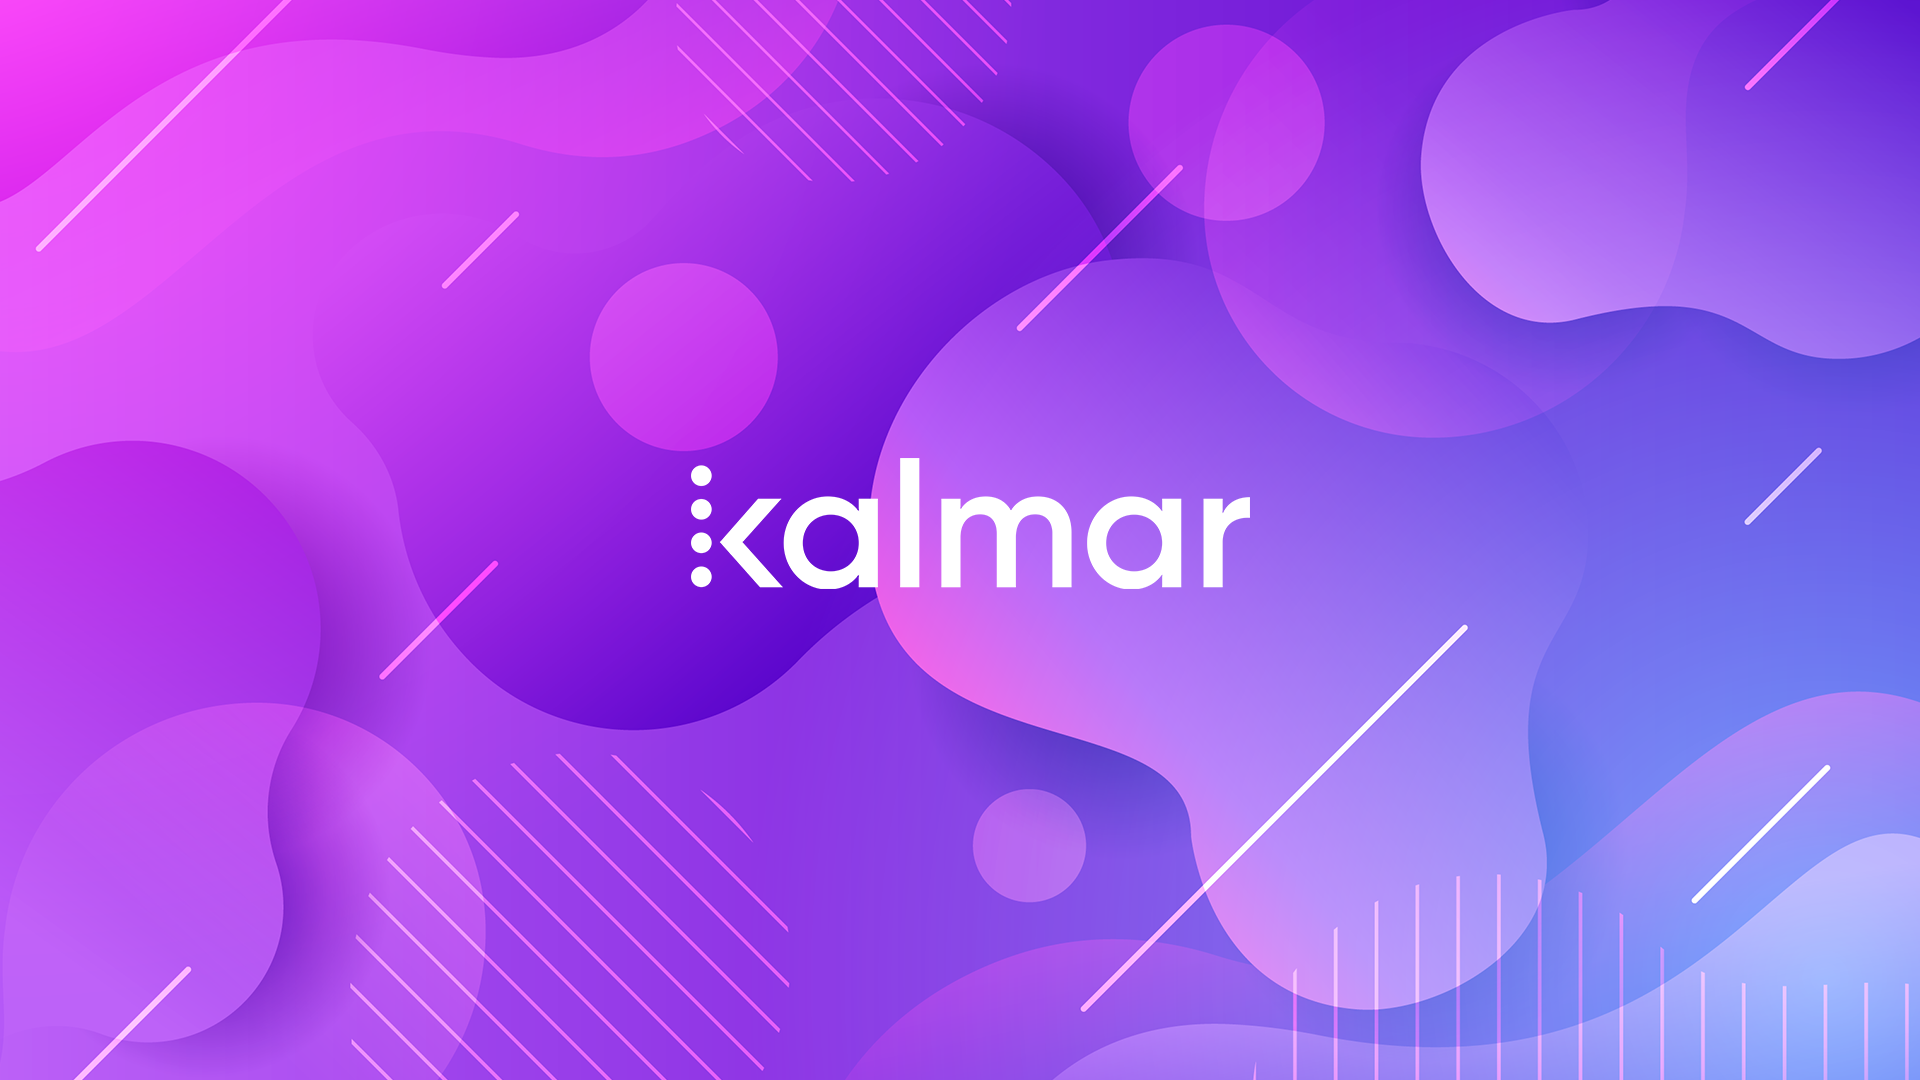 Kalmar Launches Leveraged Yield Farming Platform and Upcoming Airdrop